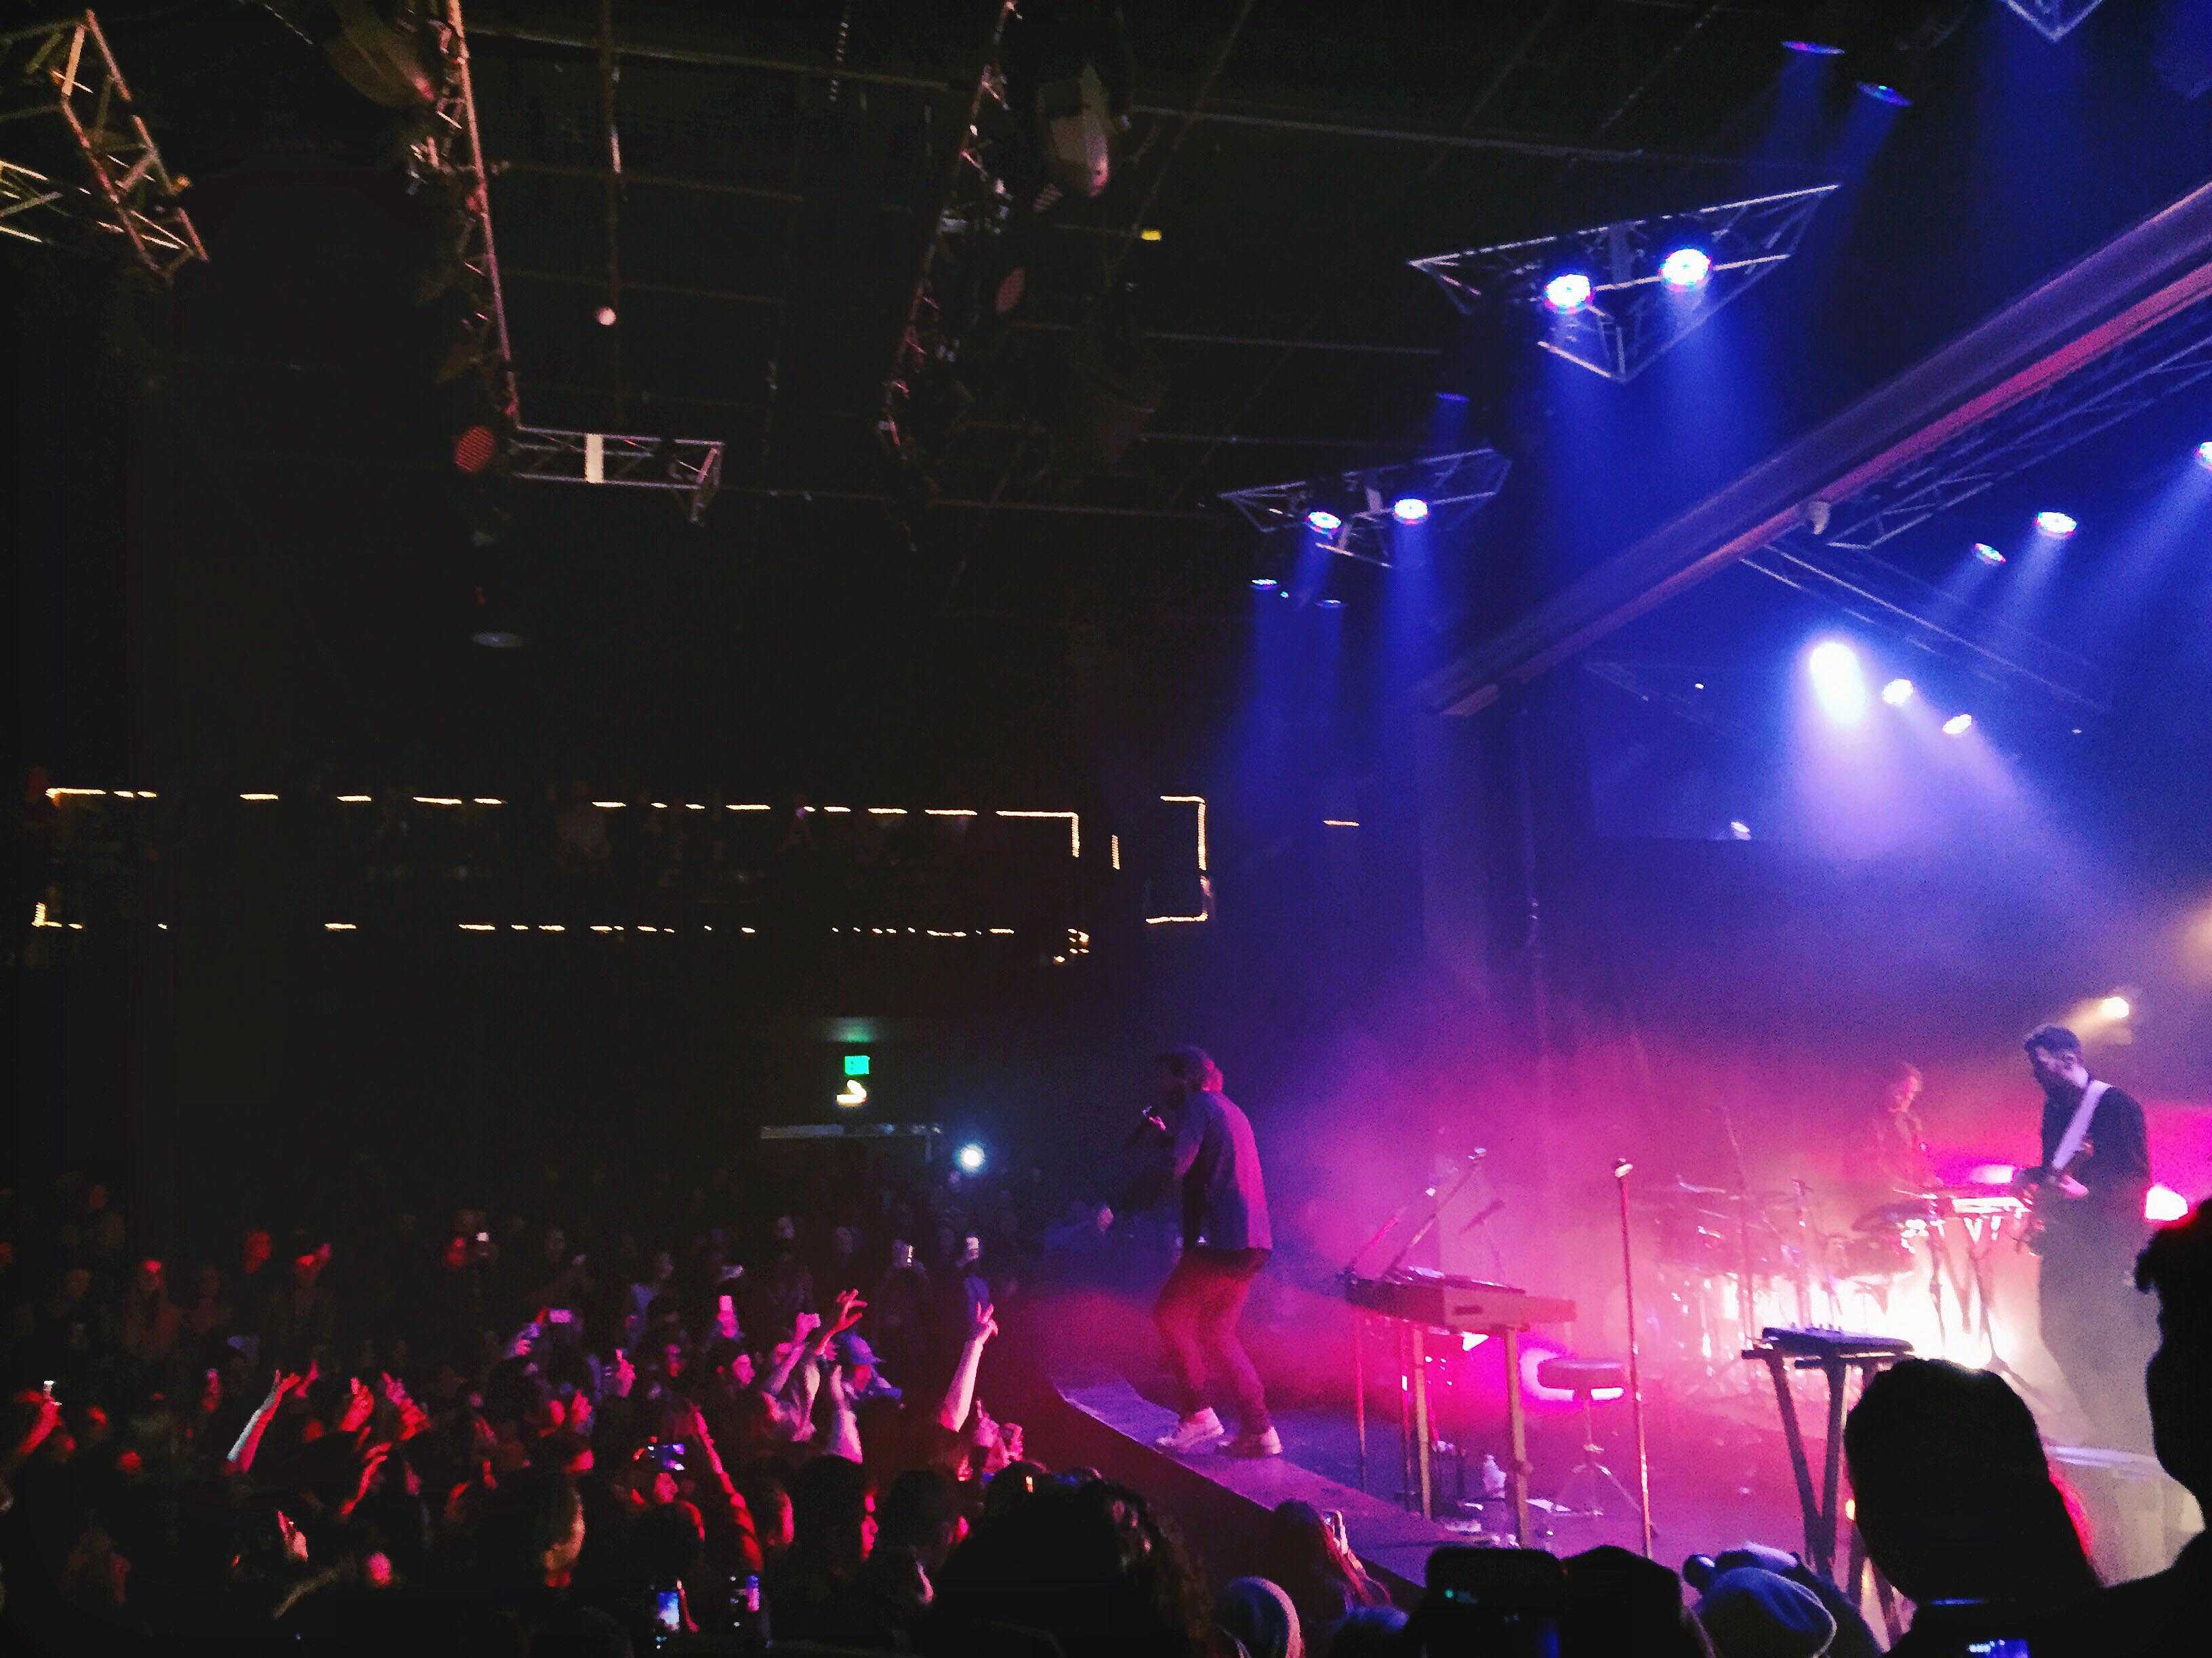 Cage the Elephant performs 'Ain't No Rest for the Wicked' on stage during a concert at the Observatory.